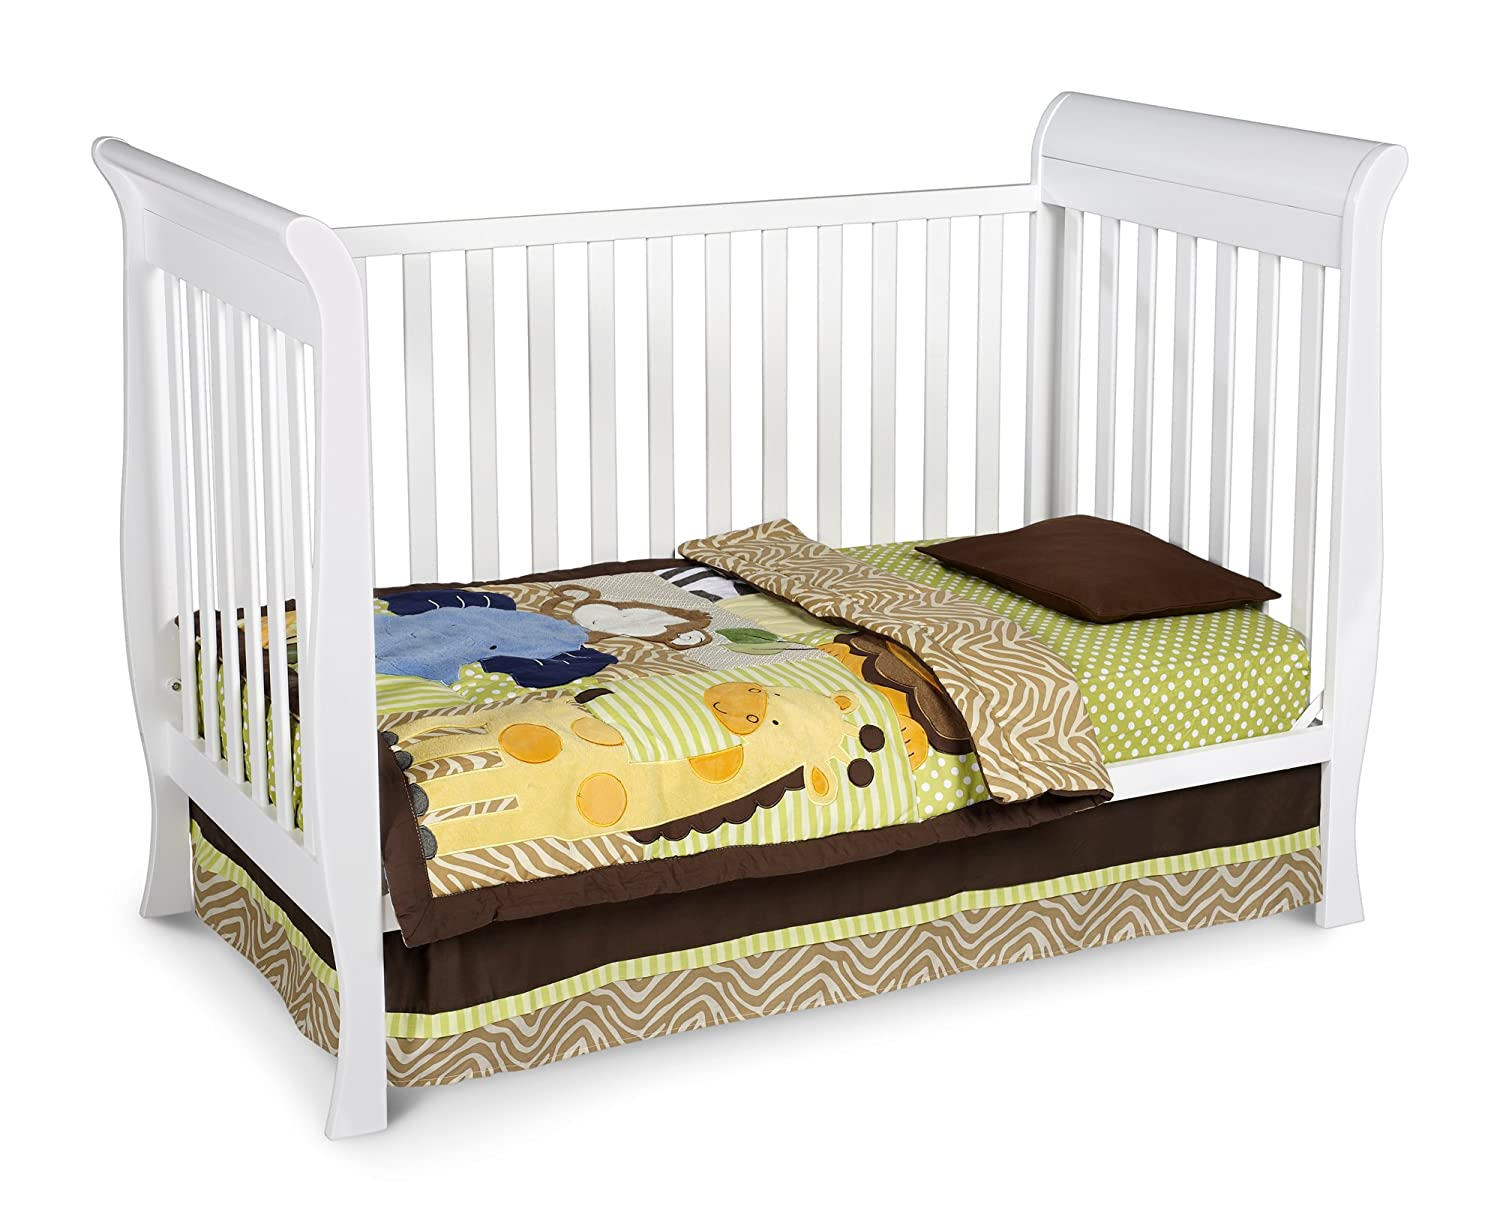 Crib for sale charleston sc - Amazon Com Delta Children Glenwood 3 In 1 Convertible Sleigh Crib White White Baby Crib Baby